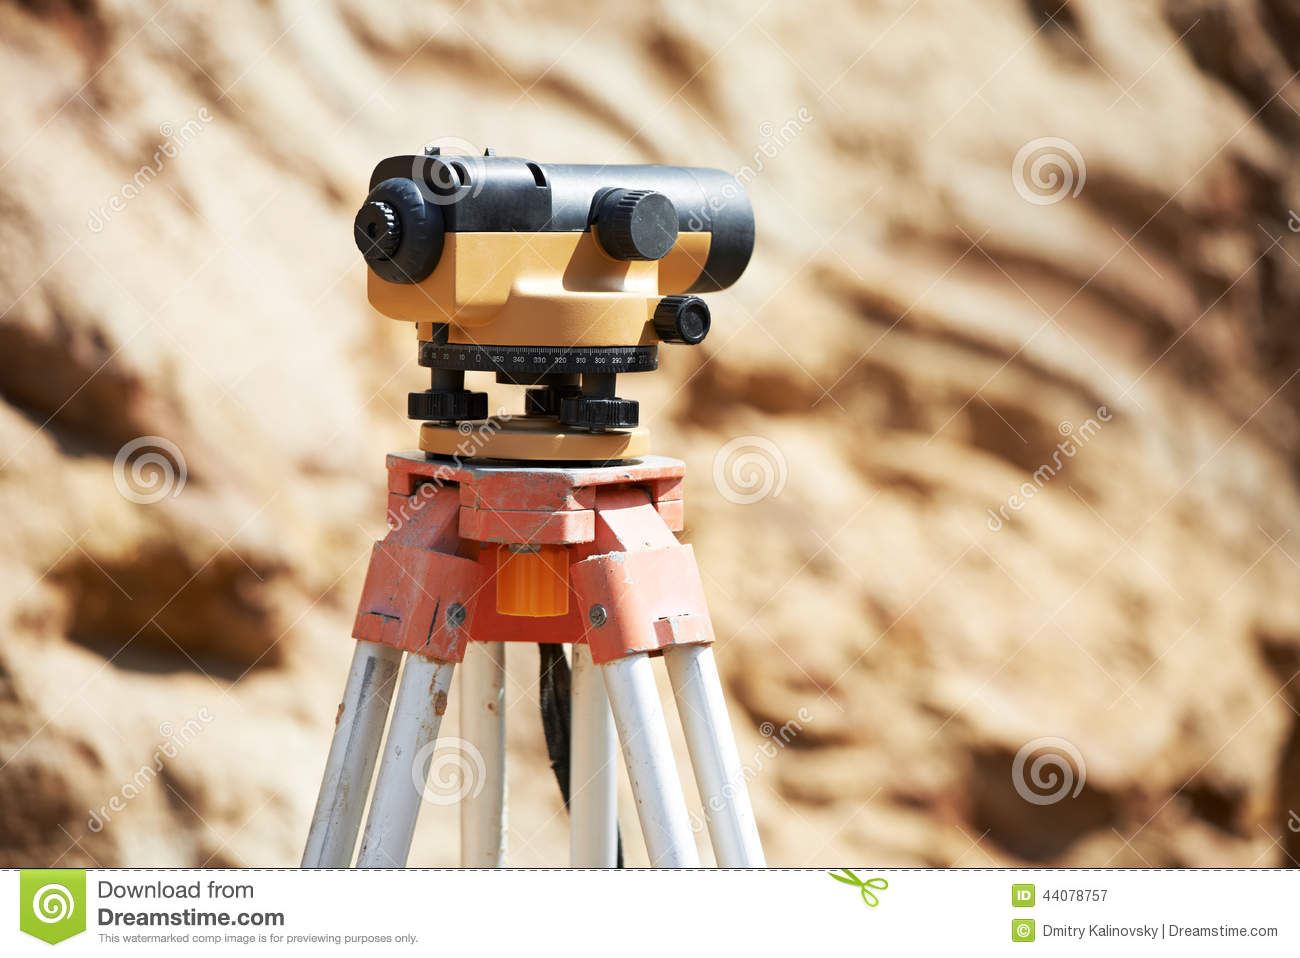 Equipment optical level or theodolite outdoors at construction site